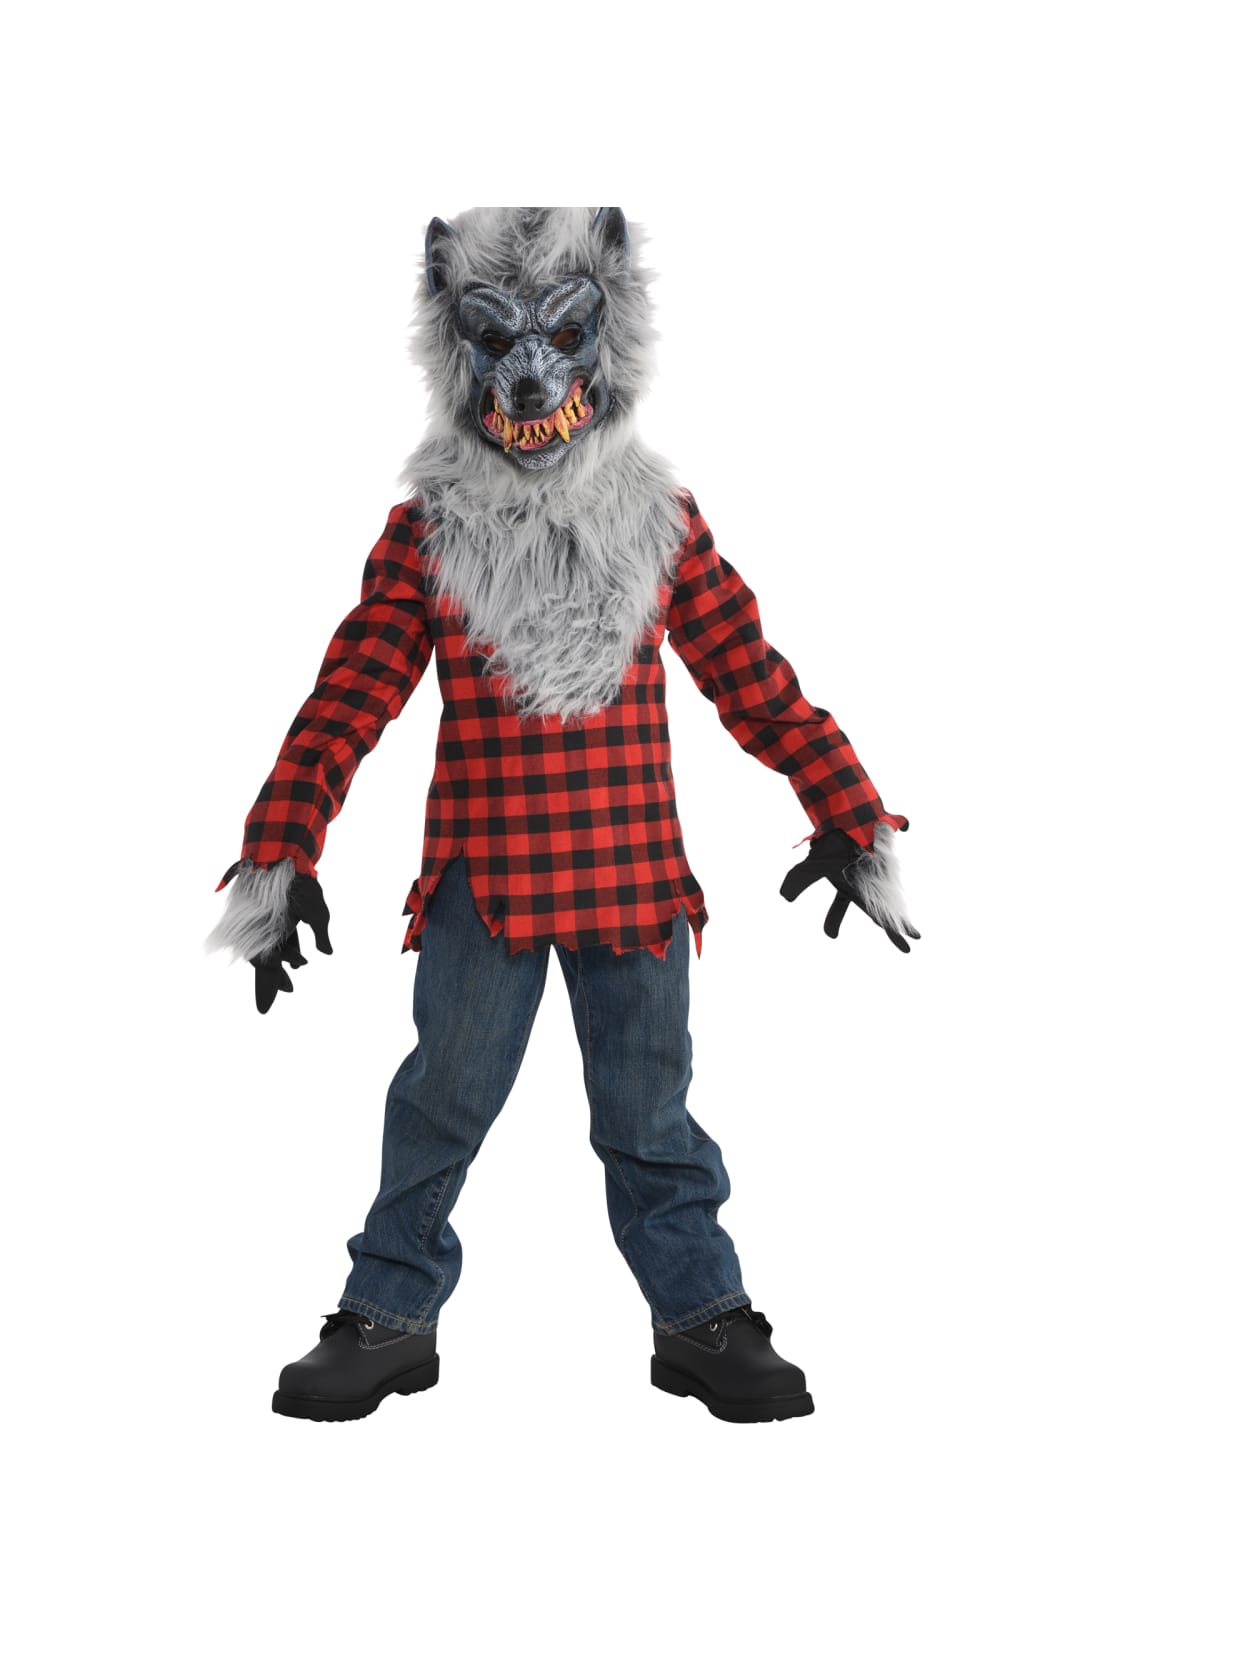 AMSCAN Hungry Howler Werewolf Halloween Costume for Boys Medium with Included Accessories